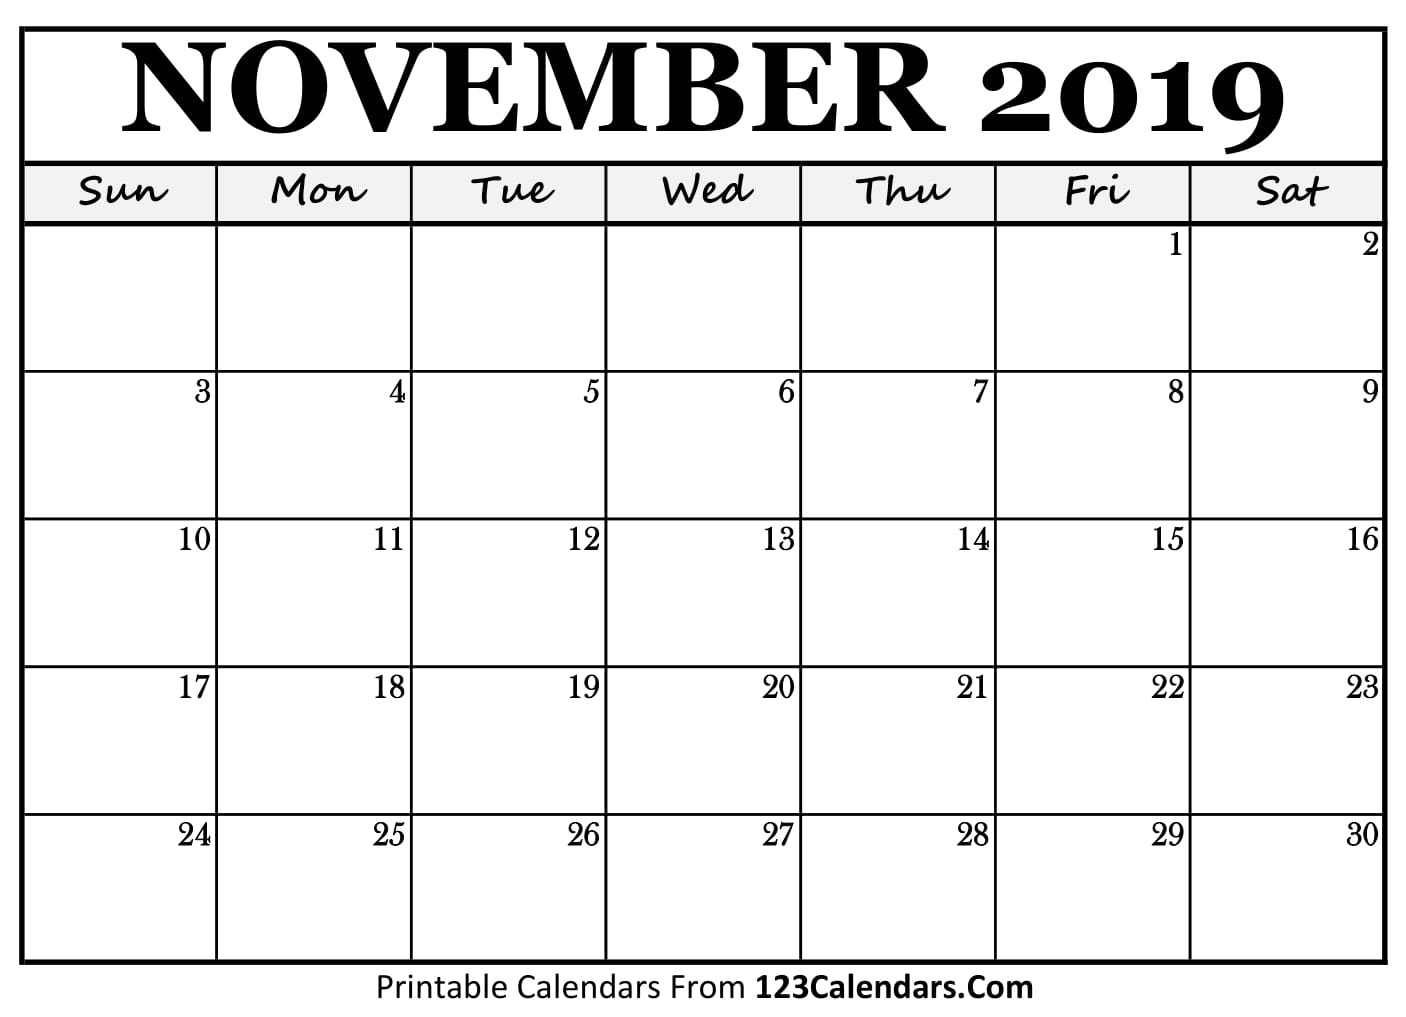 image regarding November Printable Calendar identified as November 2019 Printable Calendar